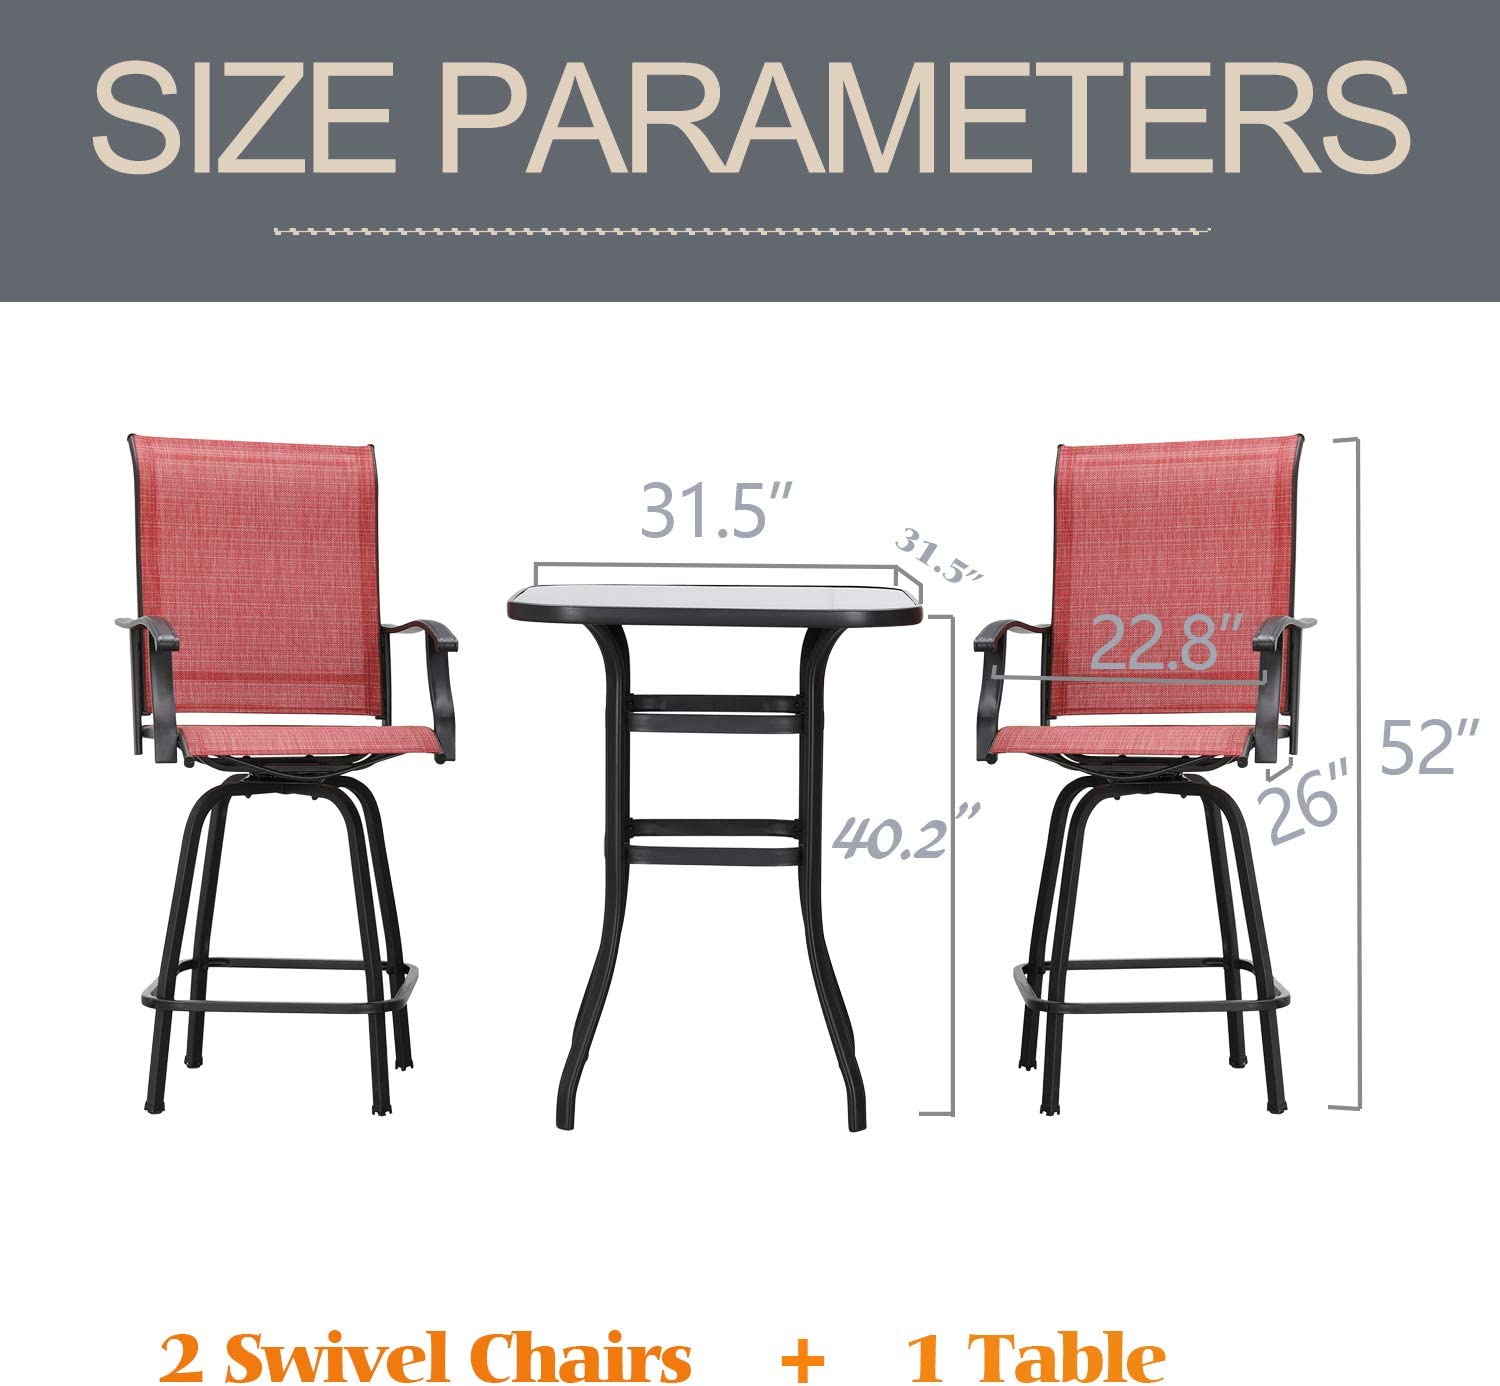 LOKATSE HOME 3 Pcs Bar Stools Set 2 High Swivel Chairs and 1 Height Outdoor Bistro Table, Patio Furniture, Red Tesling Fabric : Garden & Outdoor